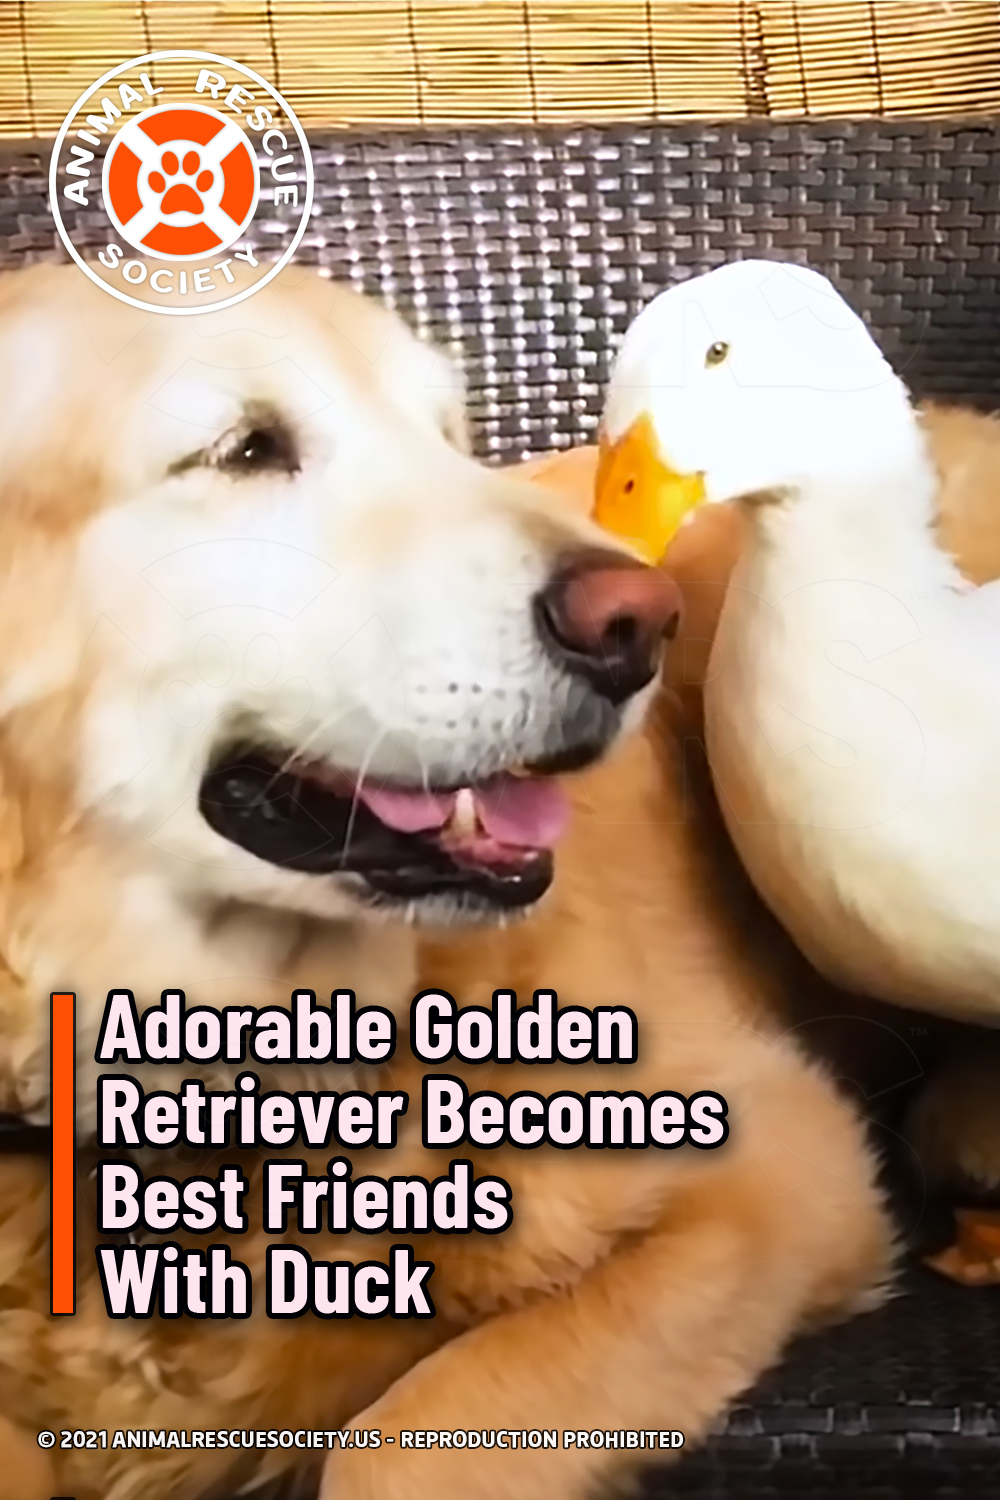 Adorable Golden Retriever Becomes Best Friends With Duck